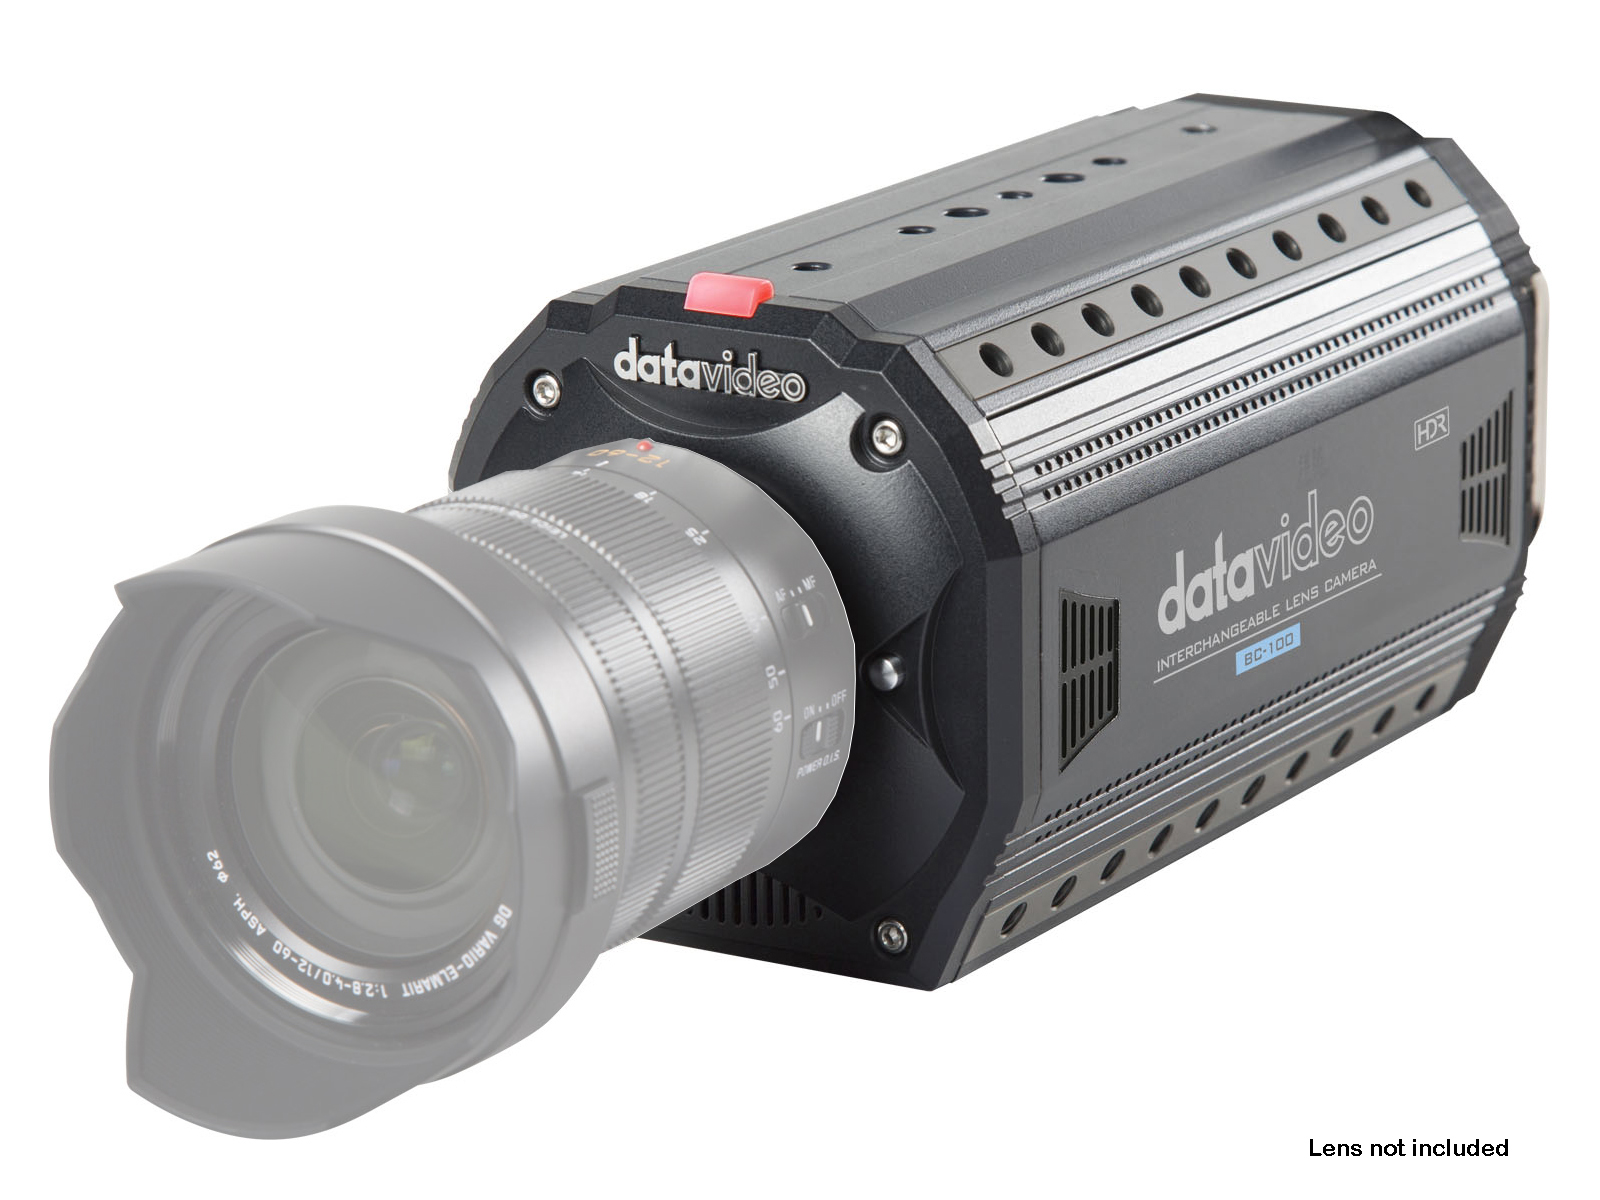 Datavideo BC-100 12-bit 1080p interchangeable lens Camera (Lens not included)